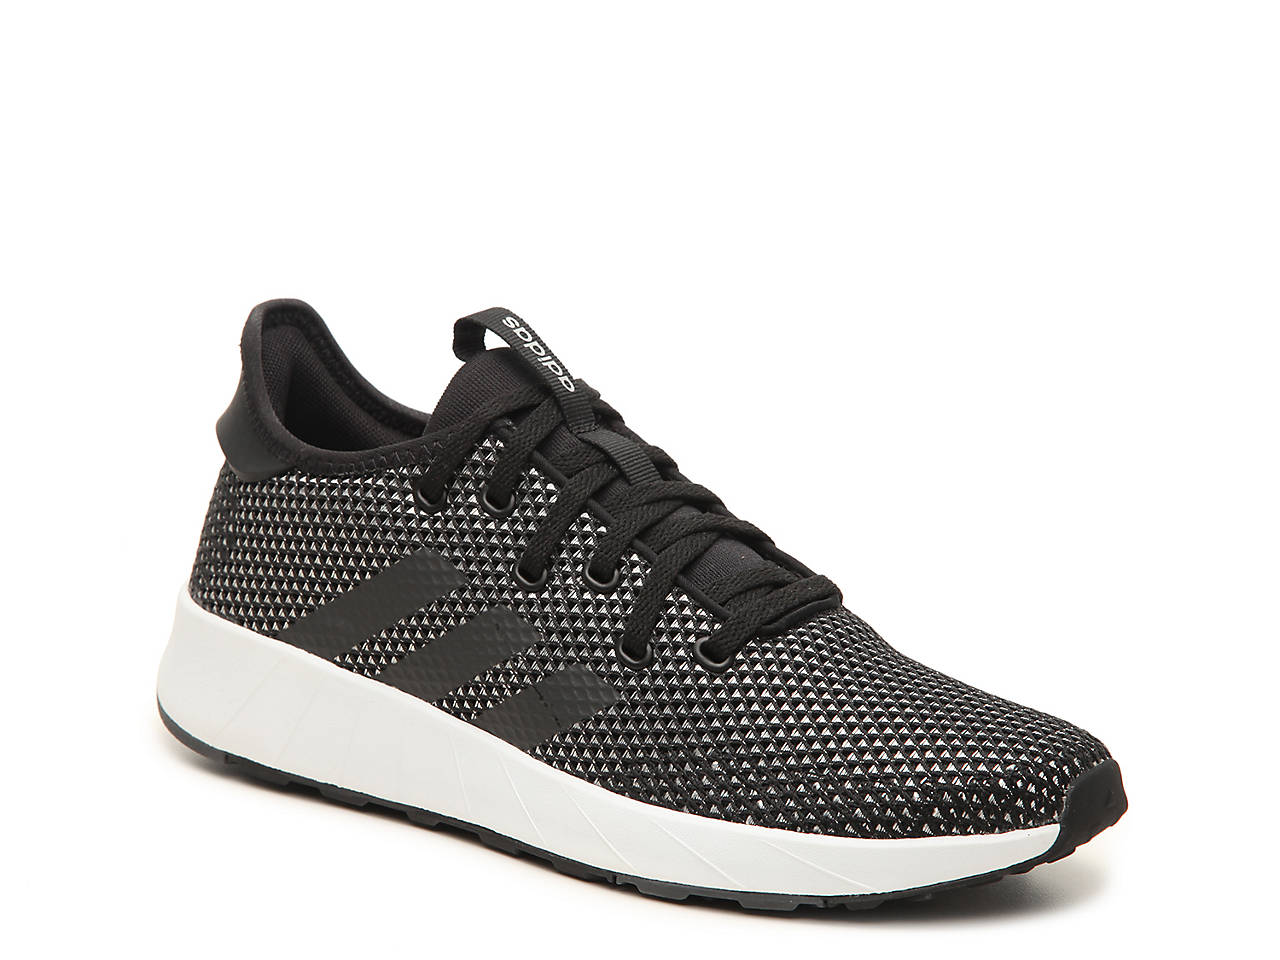 new arrivals check out special sales adidas Questar X BYD Sneaker - Women's Women's Shoes | DSW